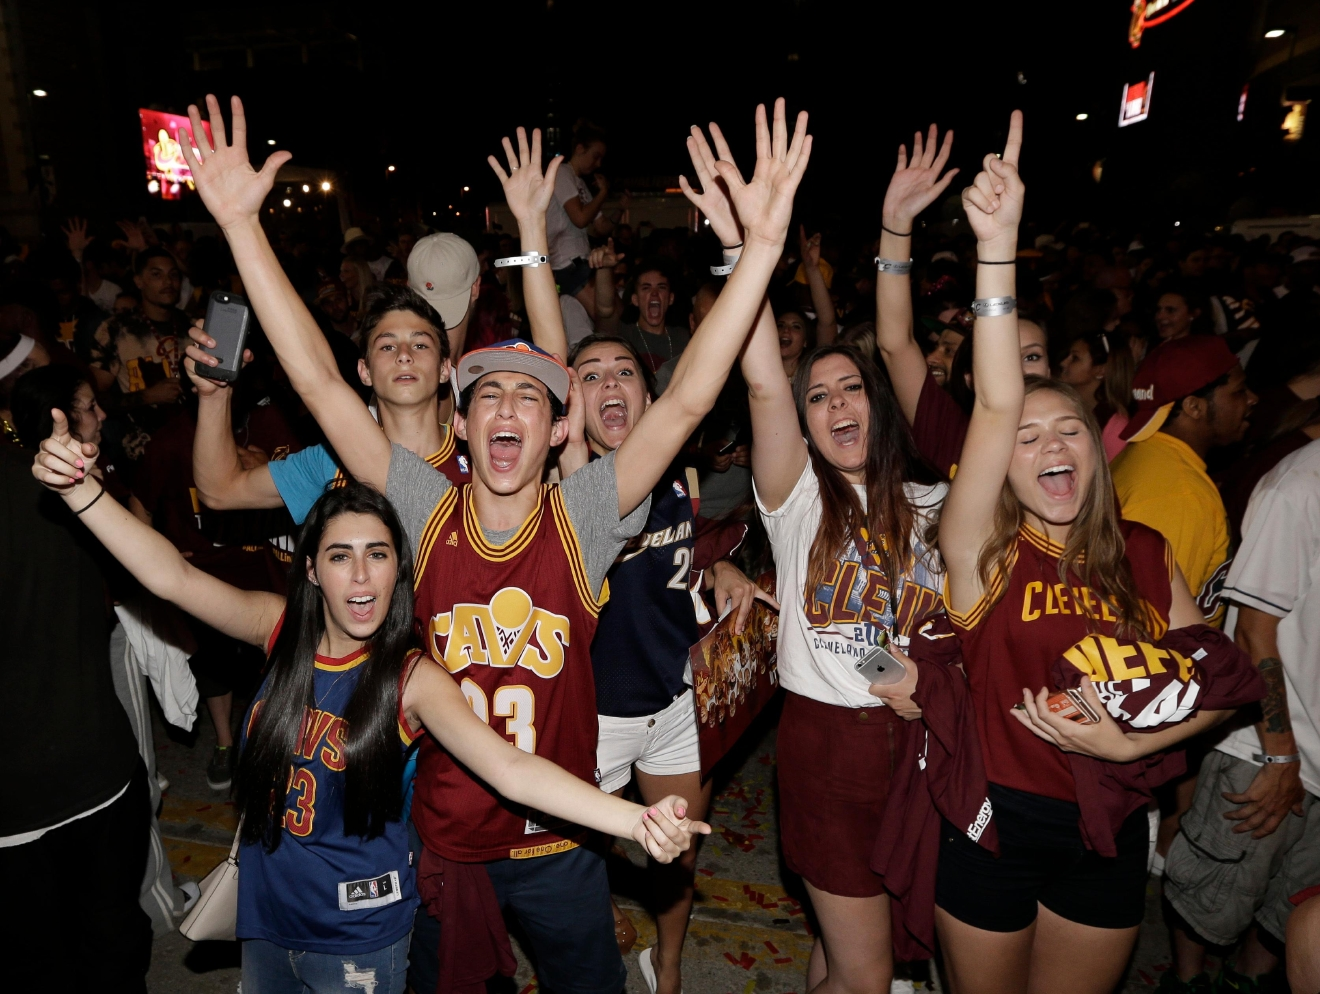 Cleveland Cavaliers fans celebrate after the Cavaliers defeated the Golden State Warriors 93-89 in Game 7 of the NBA basketball Finals, Sunday, June 19, 2016, in Cleveland. (AP Photo/Tony Dejak)